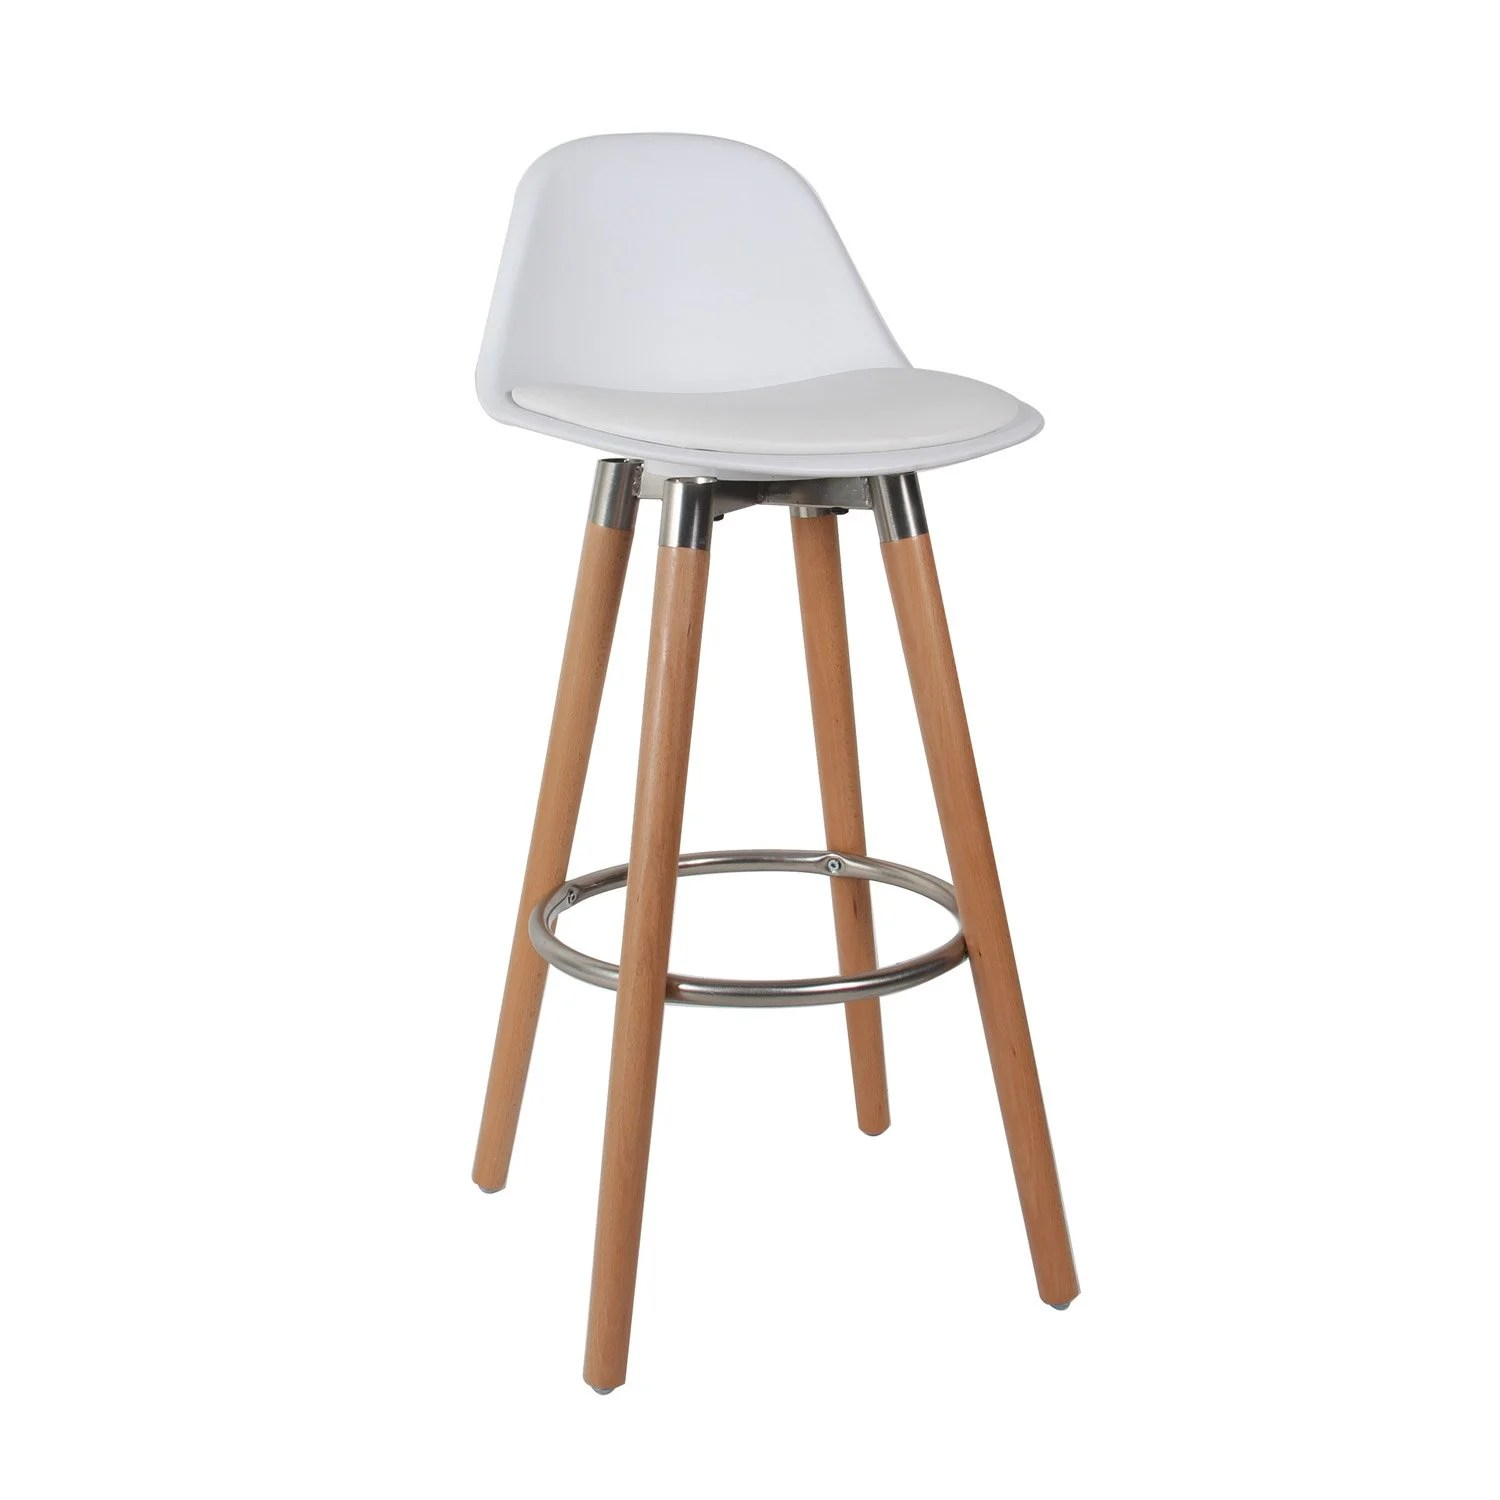 Tabouret Bar Plastique Lot De 2 Tabourets Plastique Blanc